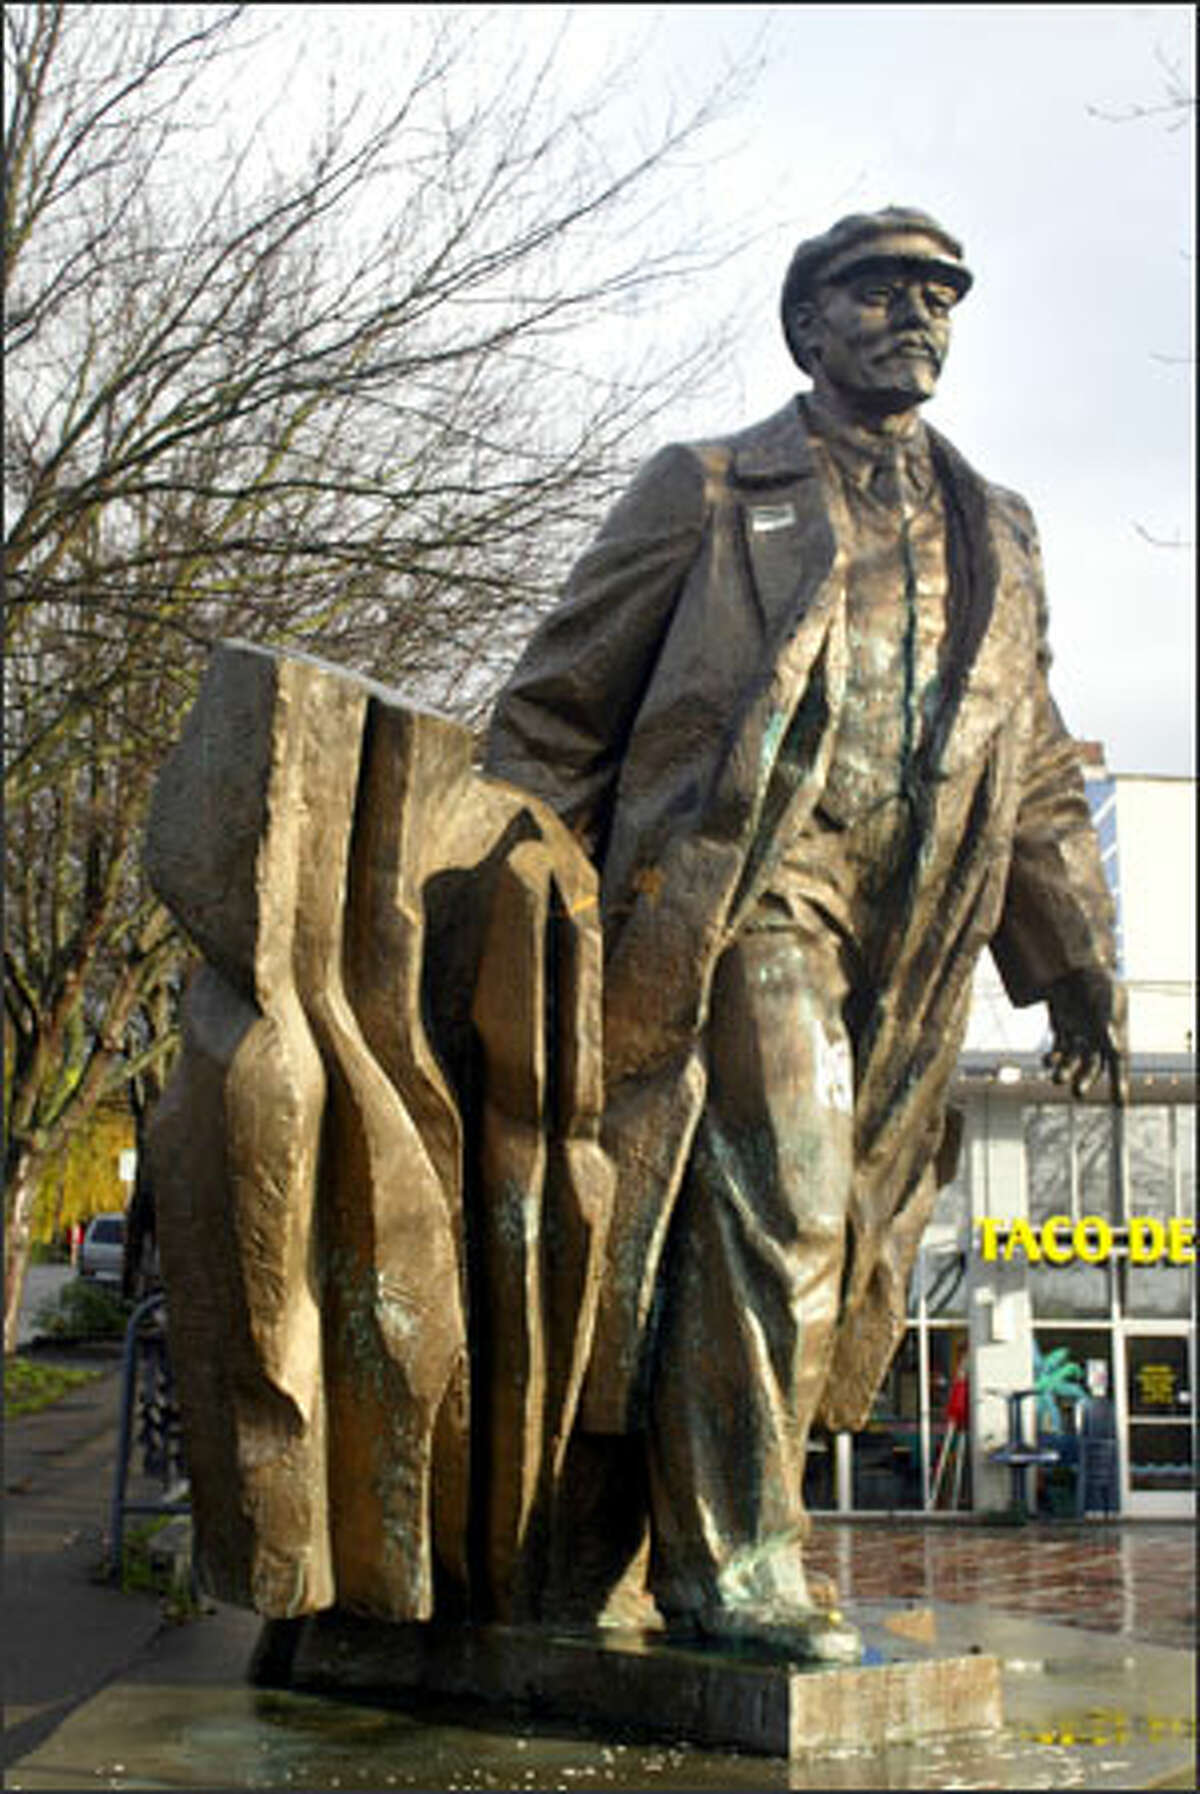 The statue of Vladimir Lenin in Fremont prior to its holiday lighting during a ceremony on Dec. 3, 2004.